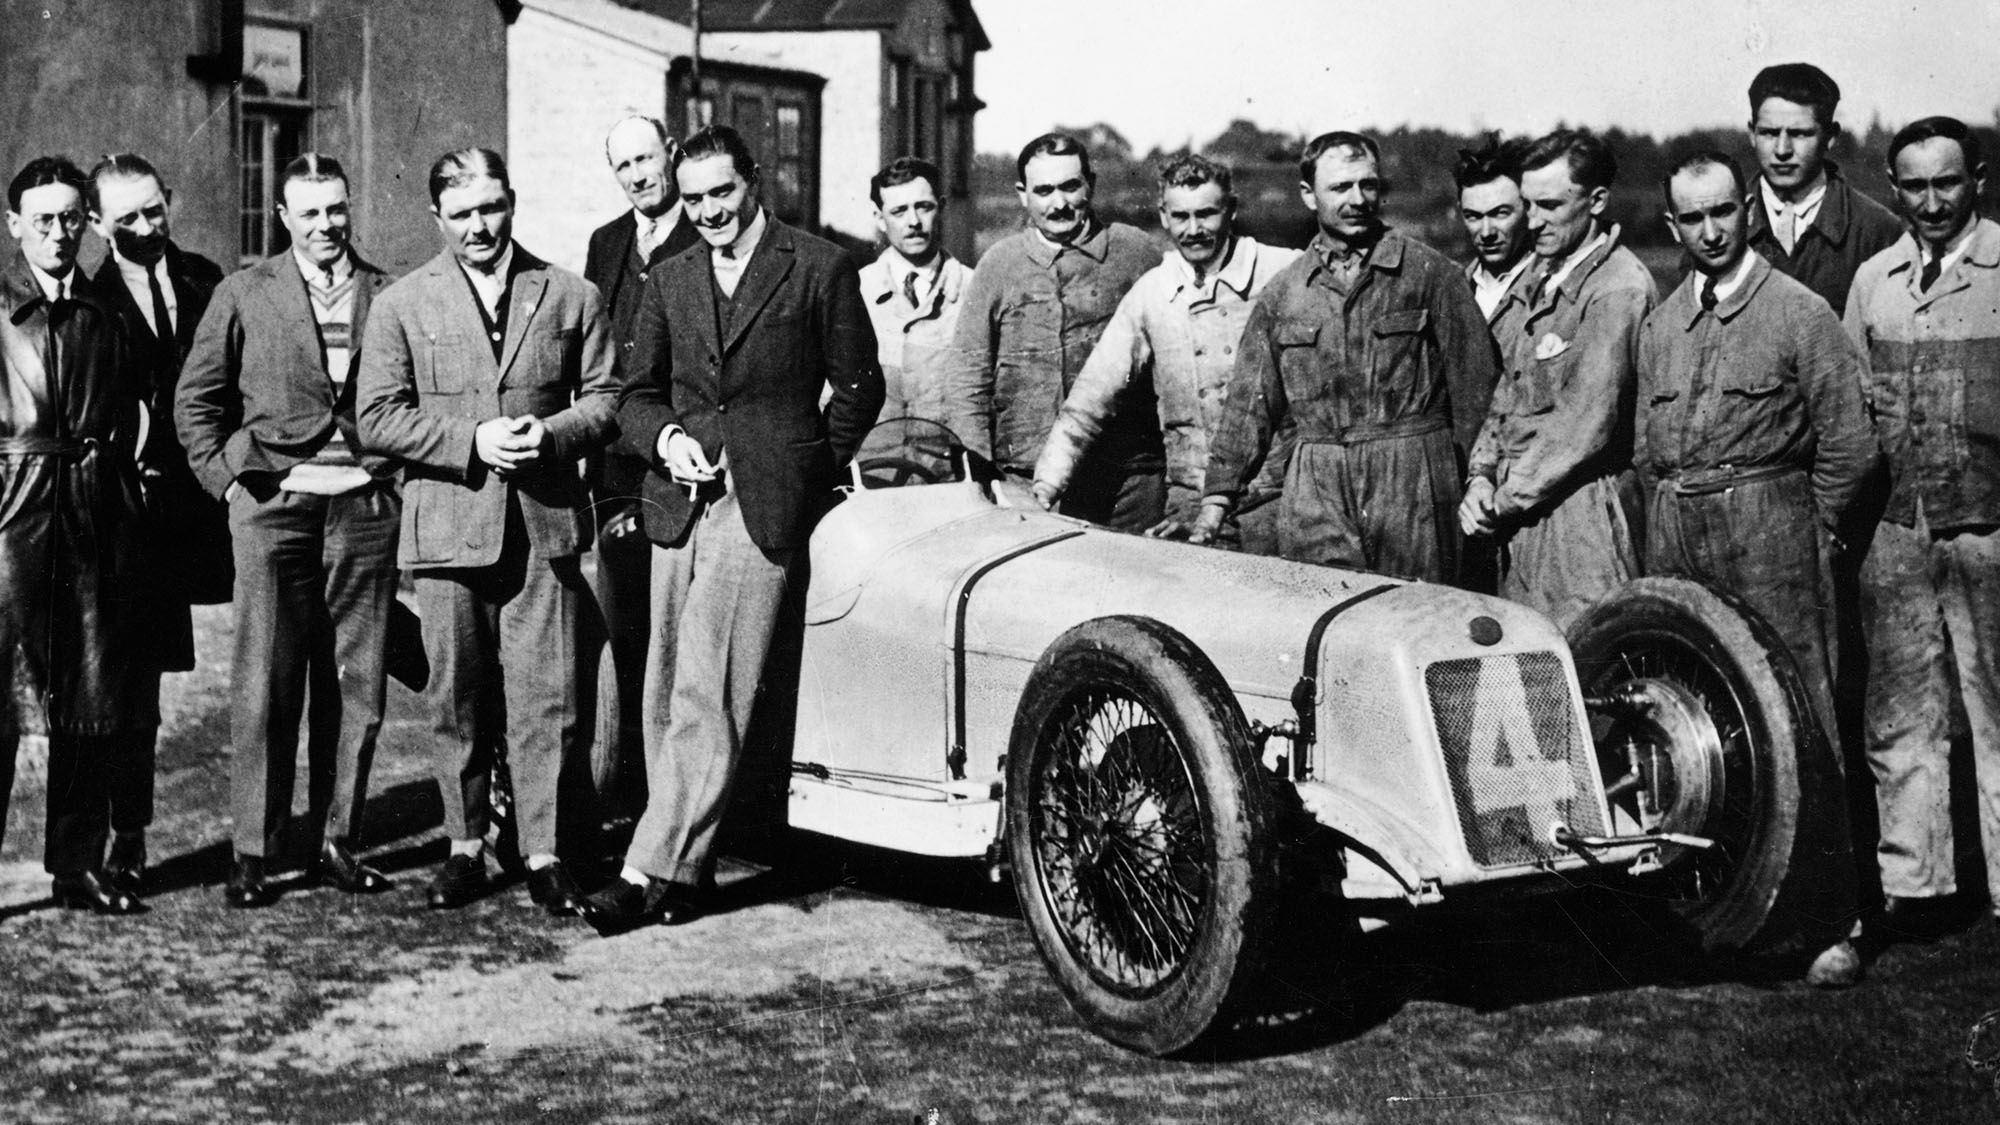 Robert Benoist with a cigarette, leaning against a Delage 15-S8, 1927. A group of mechanics stand to the right of the car. The racing drivers Albert Divo and Edmond Bourlier stand to the left of Benoist; Divo immediately to the left of him, and Bourlier to the left of Divo. In 1927 Benoist won the French, Spanish, European and British Grand Prix in a Delage 15-S8. (Photo by National Motor Museum/Heritage Images/Getty Images)